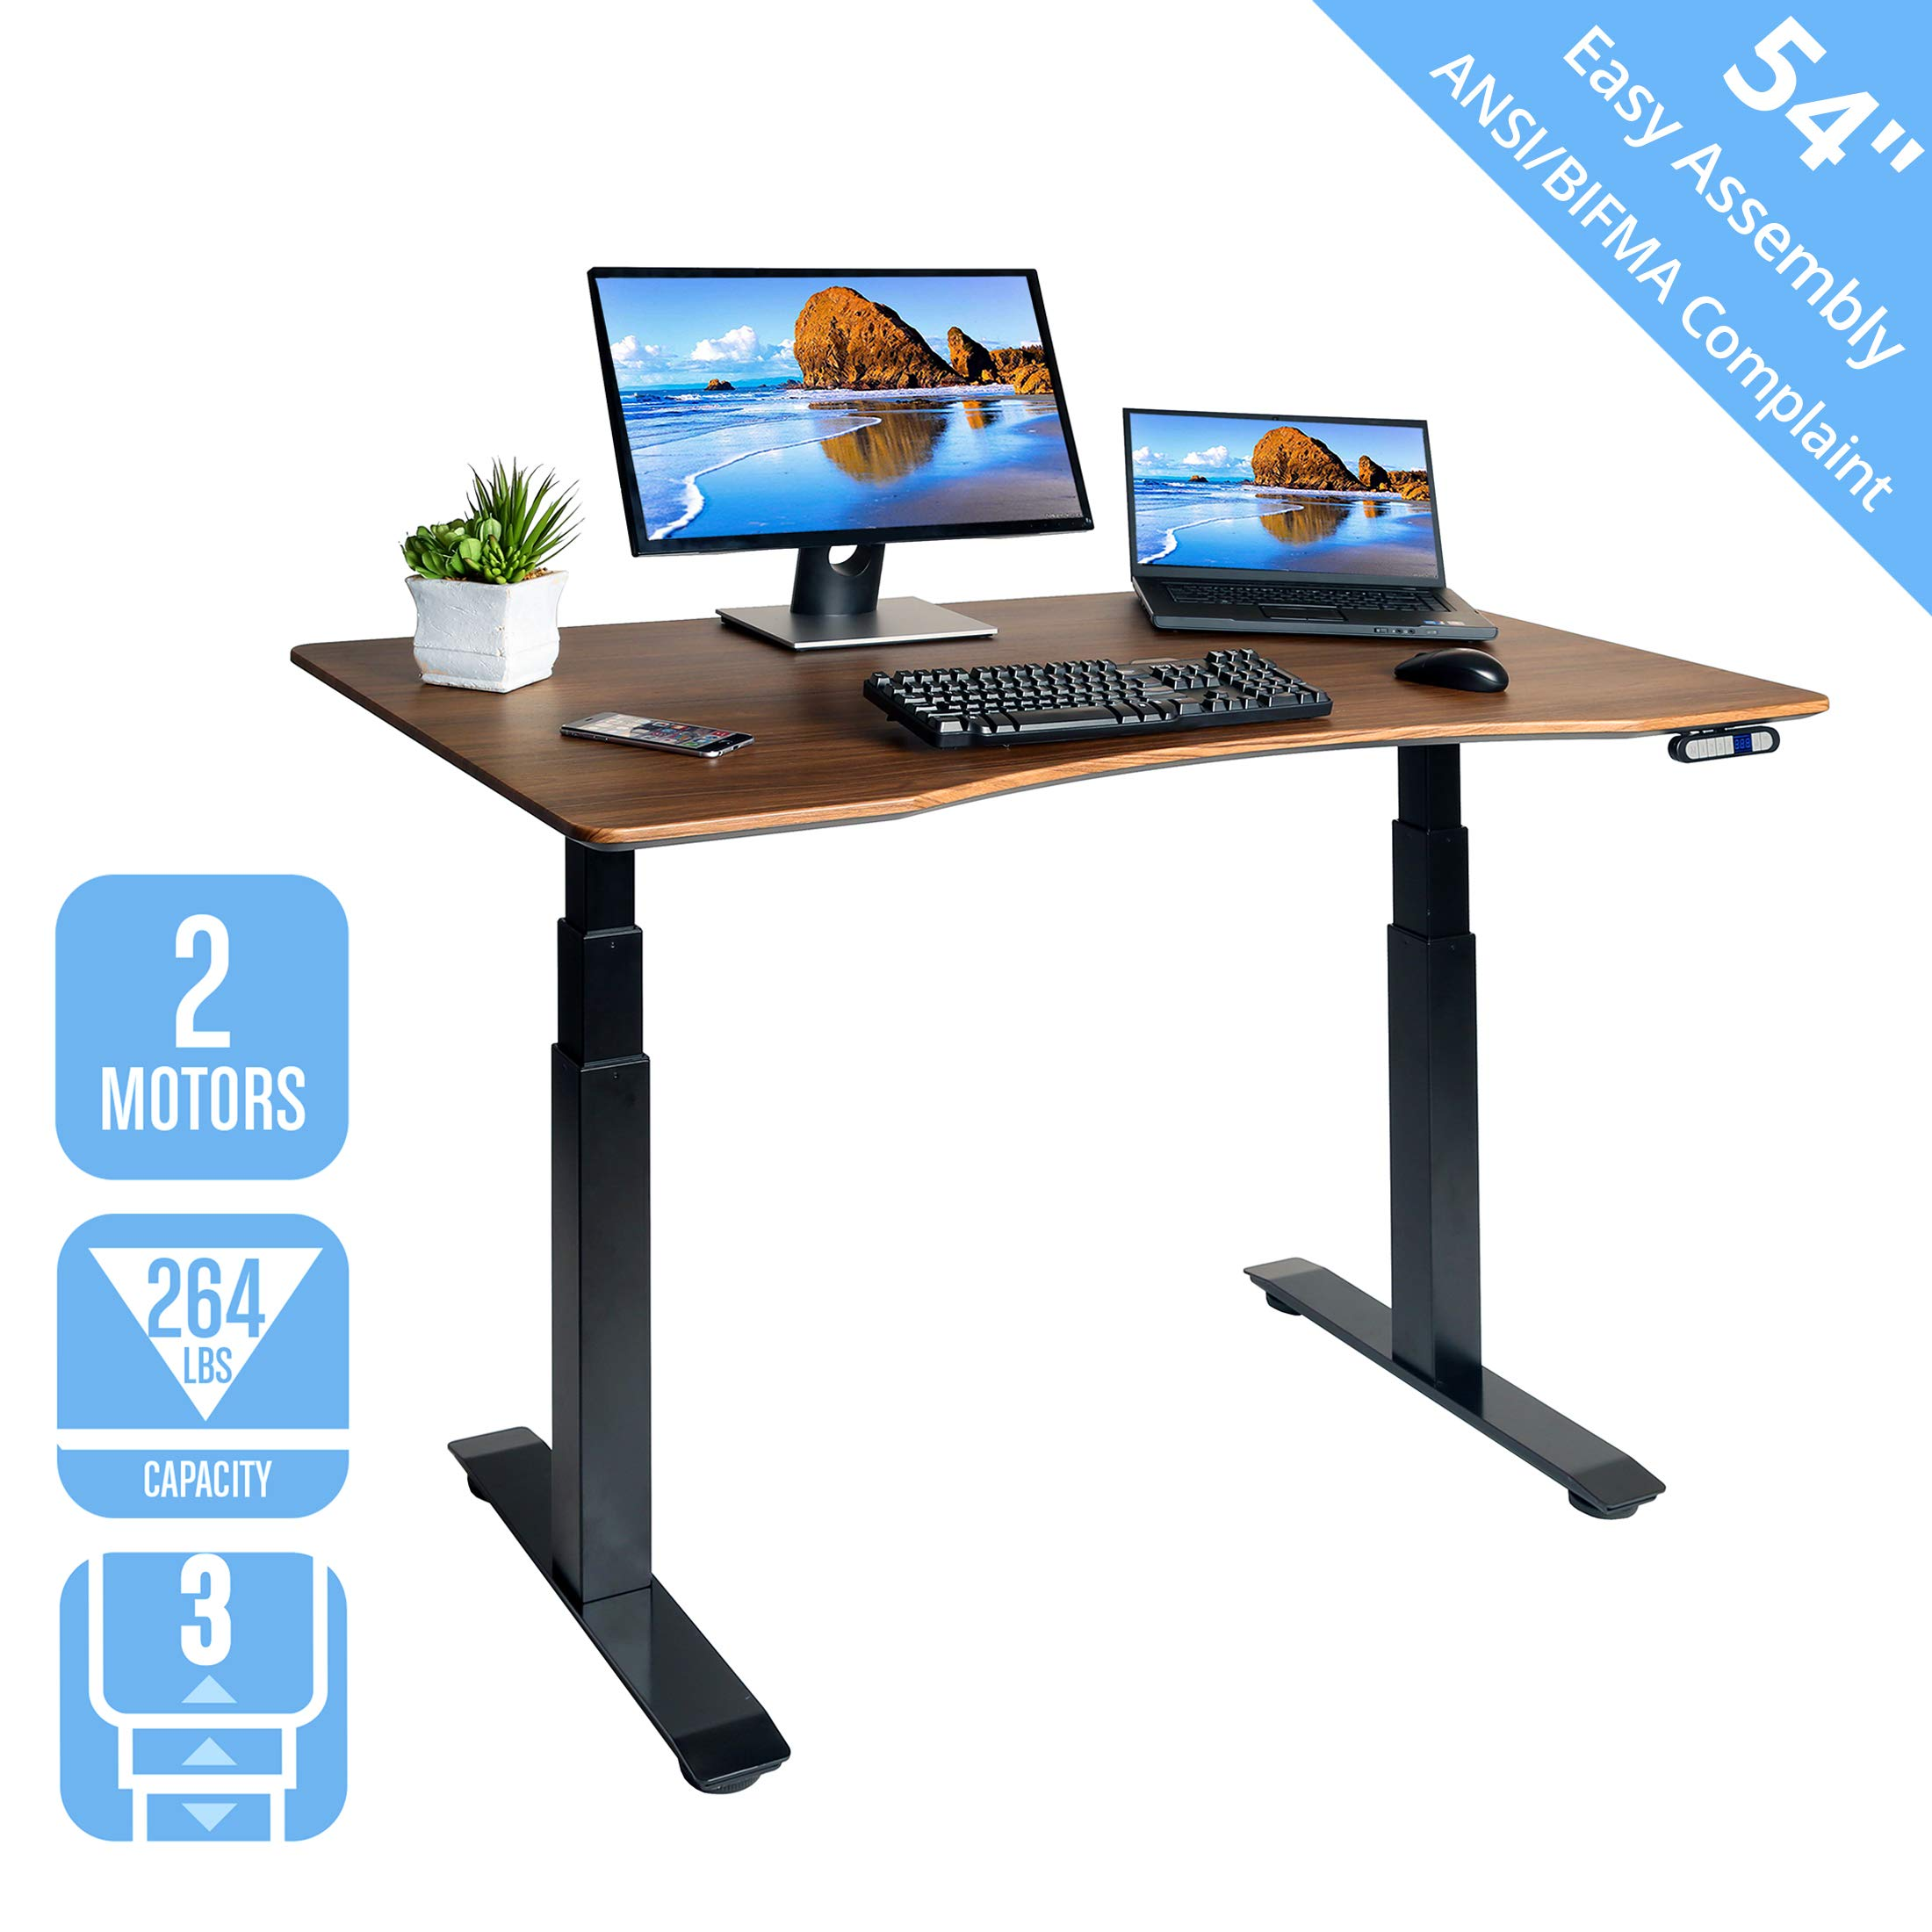 Seville Classics OFFK65826 Airlift S3 Electric Standing Desk with 54'' Top, Dual Motors, 4 Memory Buttons, LED Height Display (Max. 51.4'' H) 3-Section Base, Black/Walnut, Wood, by Seville Classics